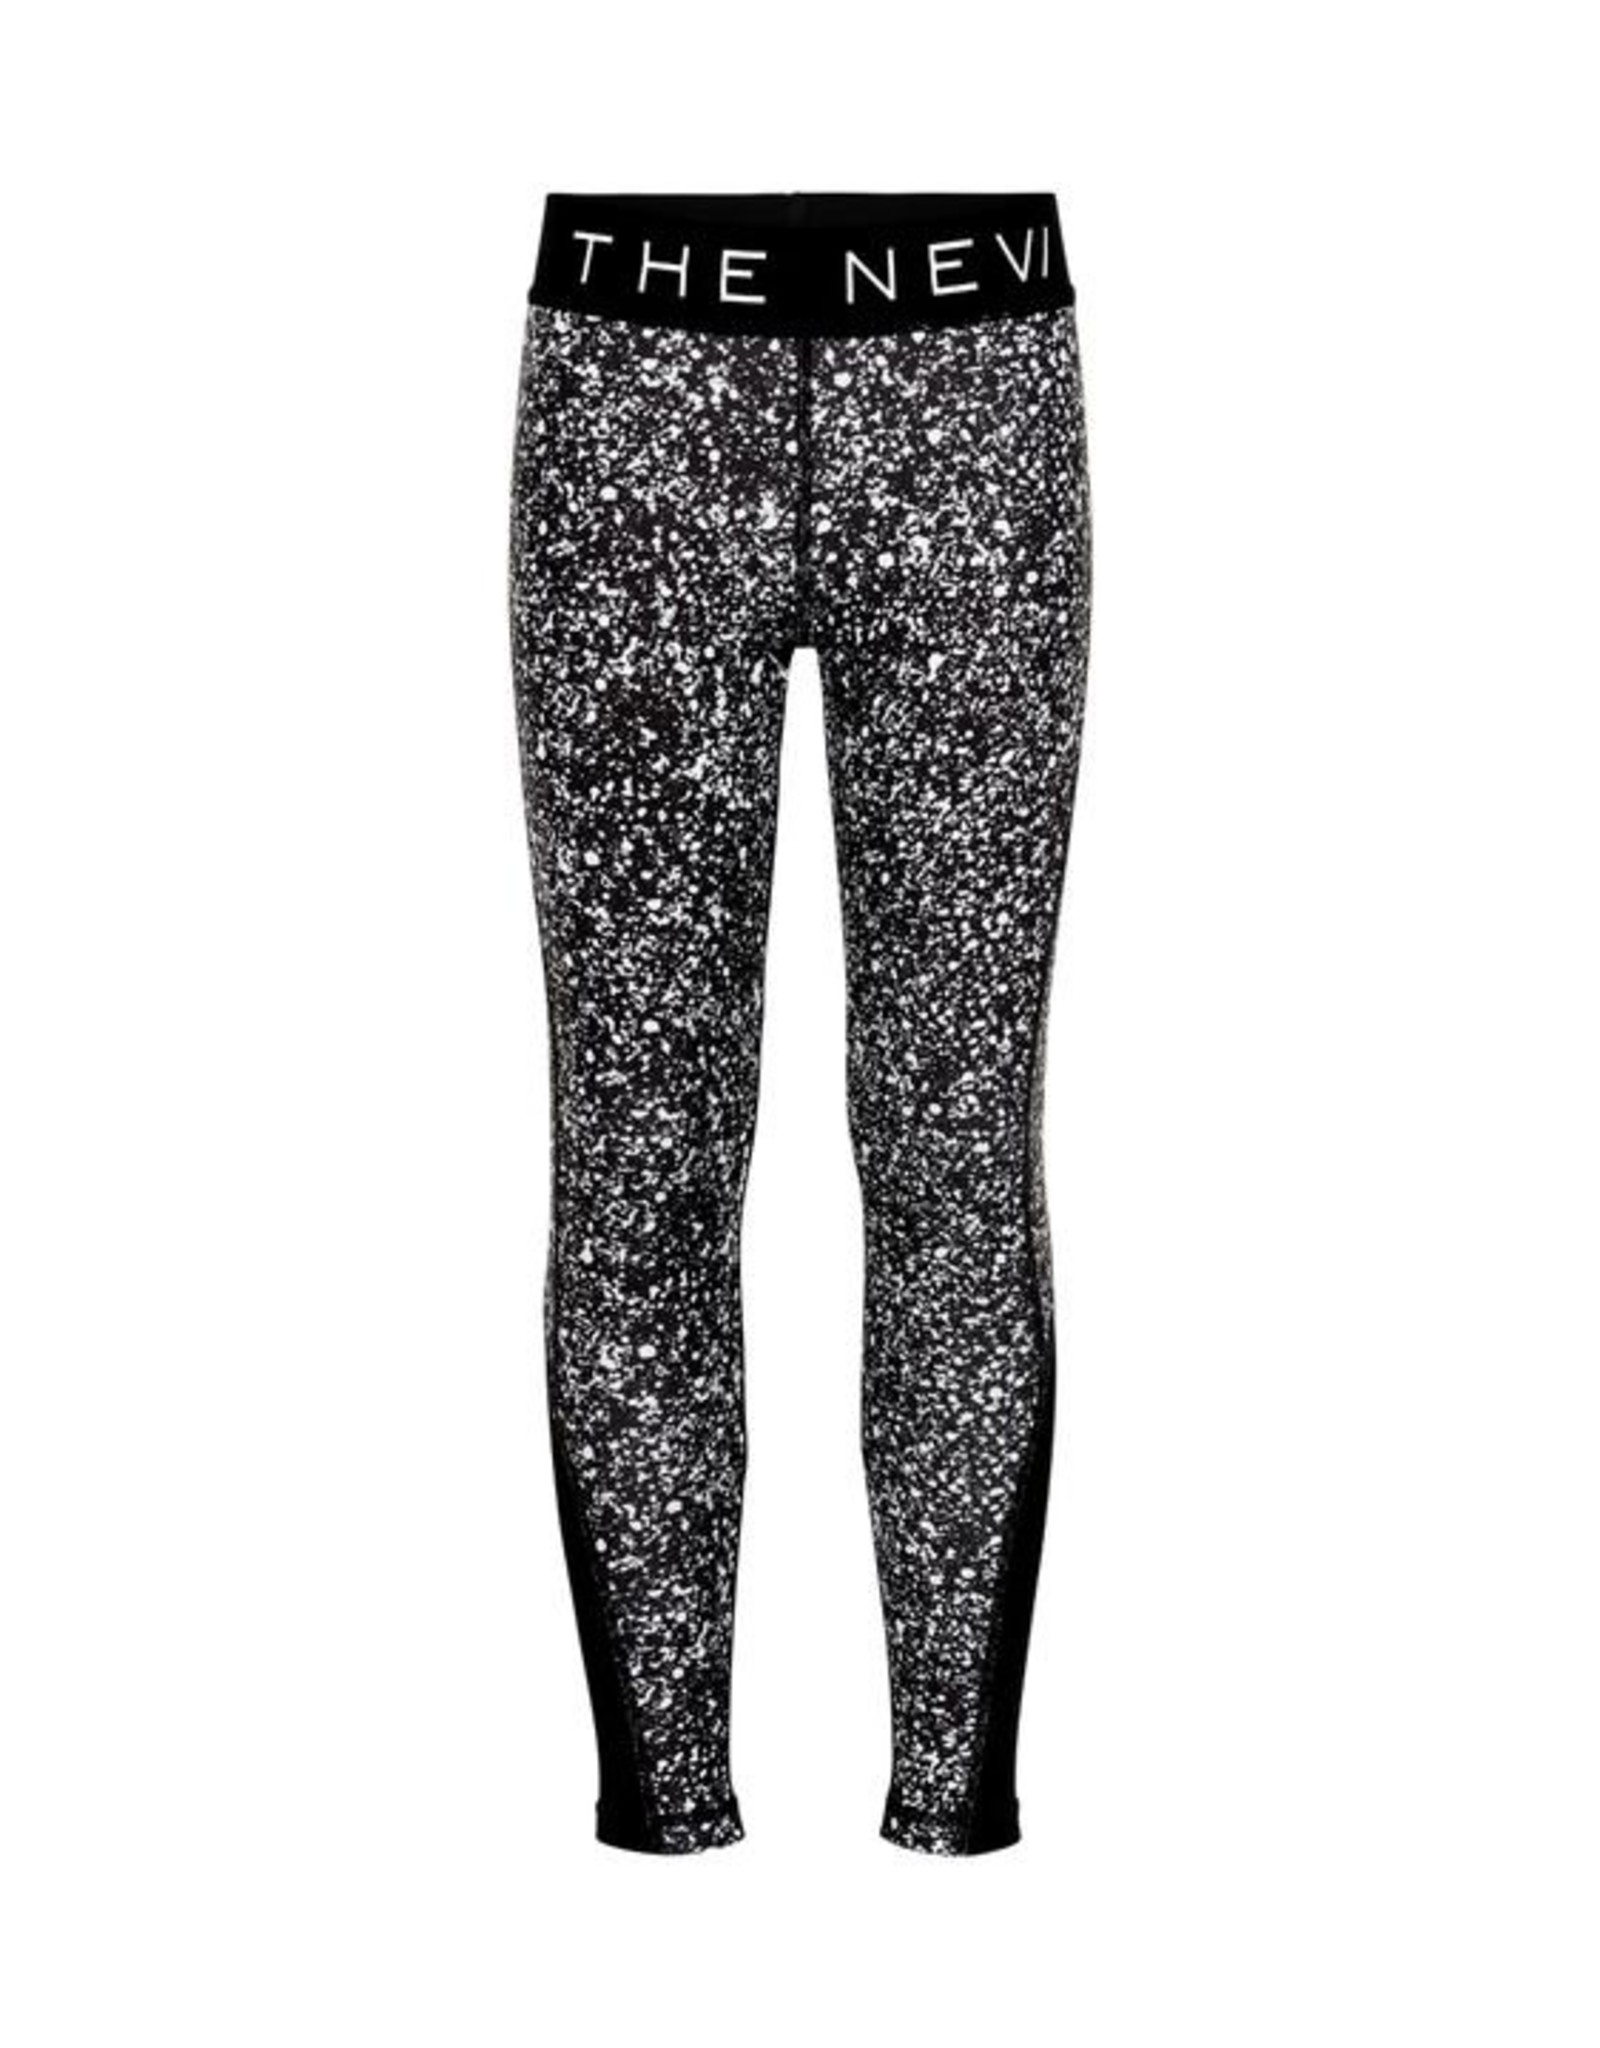 The New Pure - Manik Tights - 3/4